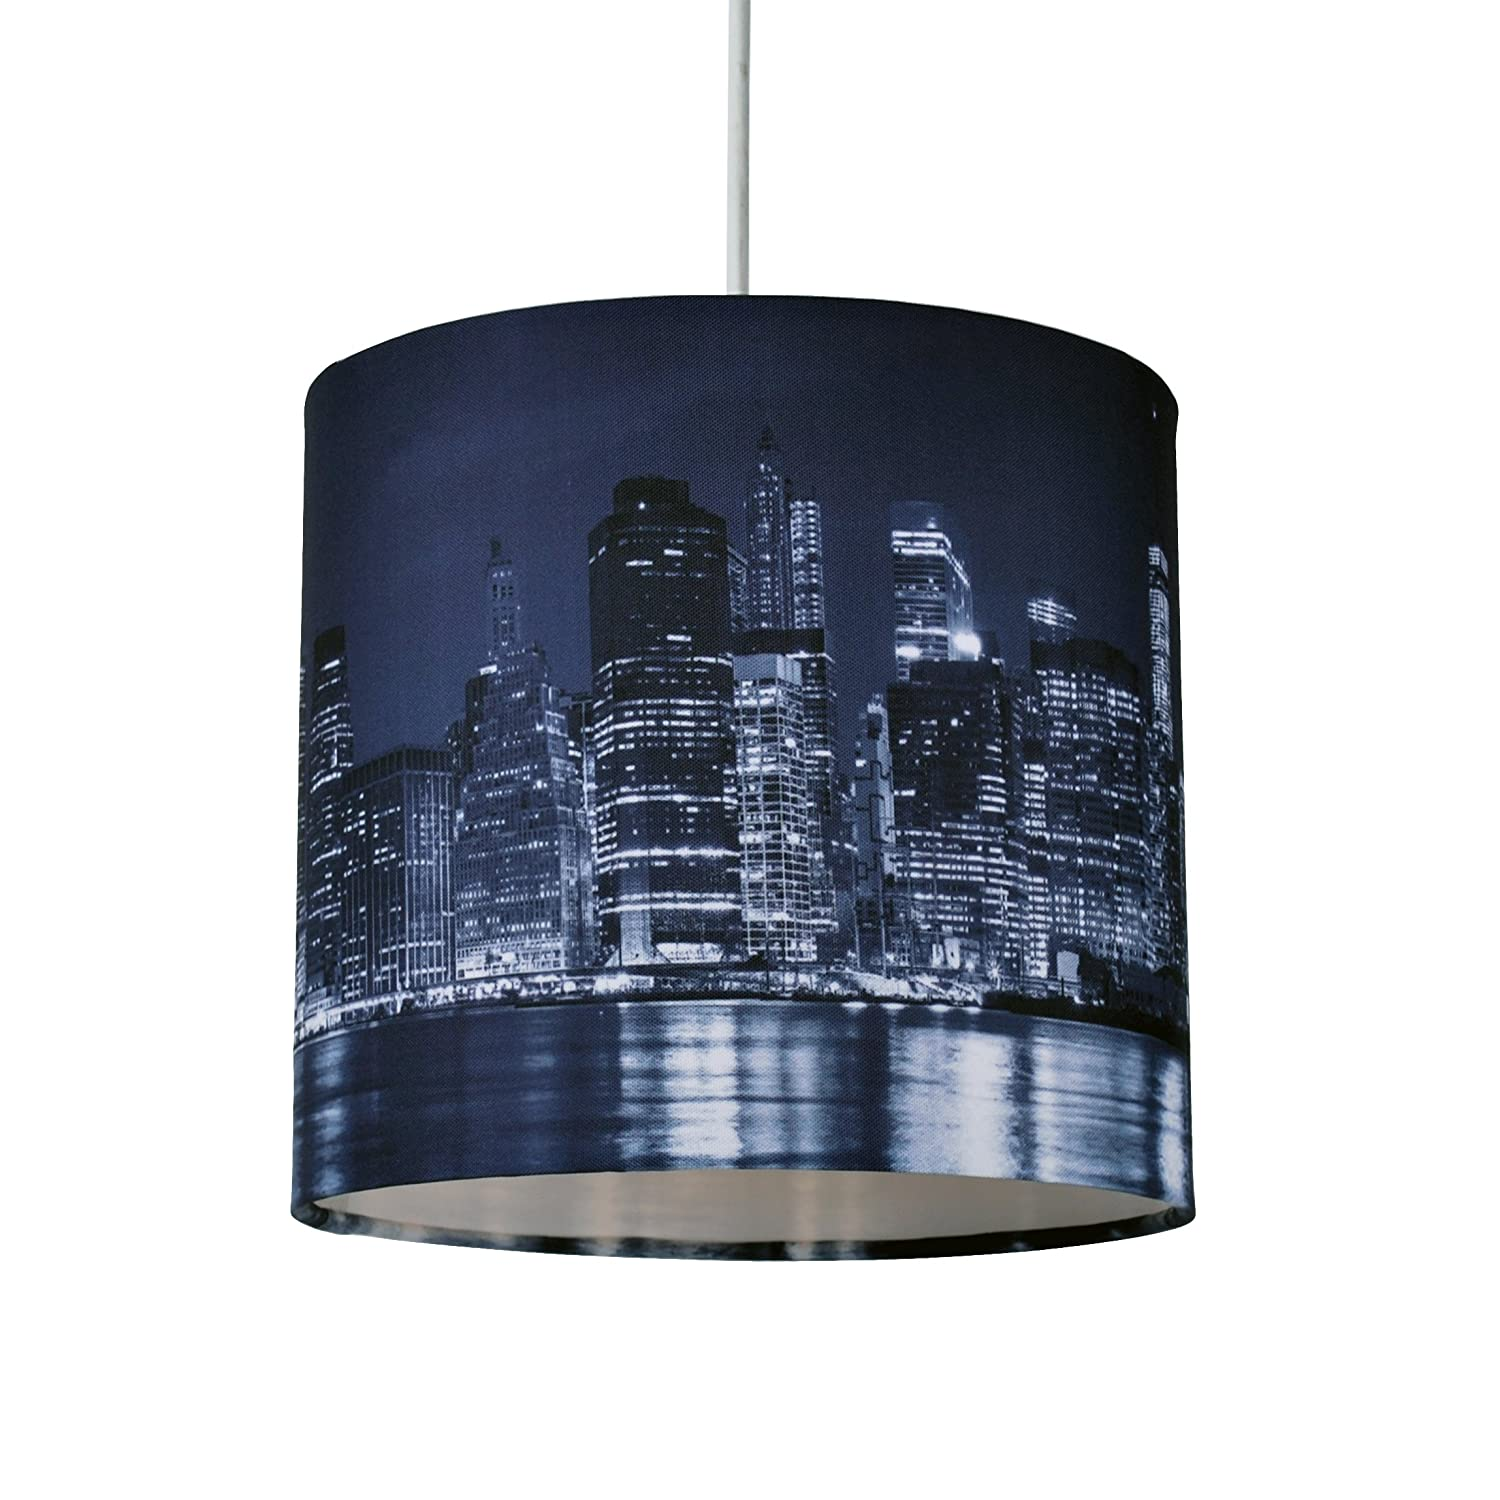 20cm Lamp Shade Ceiling Light Digital Printed Fabric New York Skyline At Night First Choice Lighting